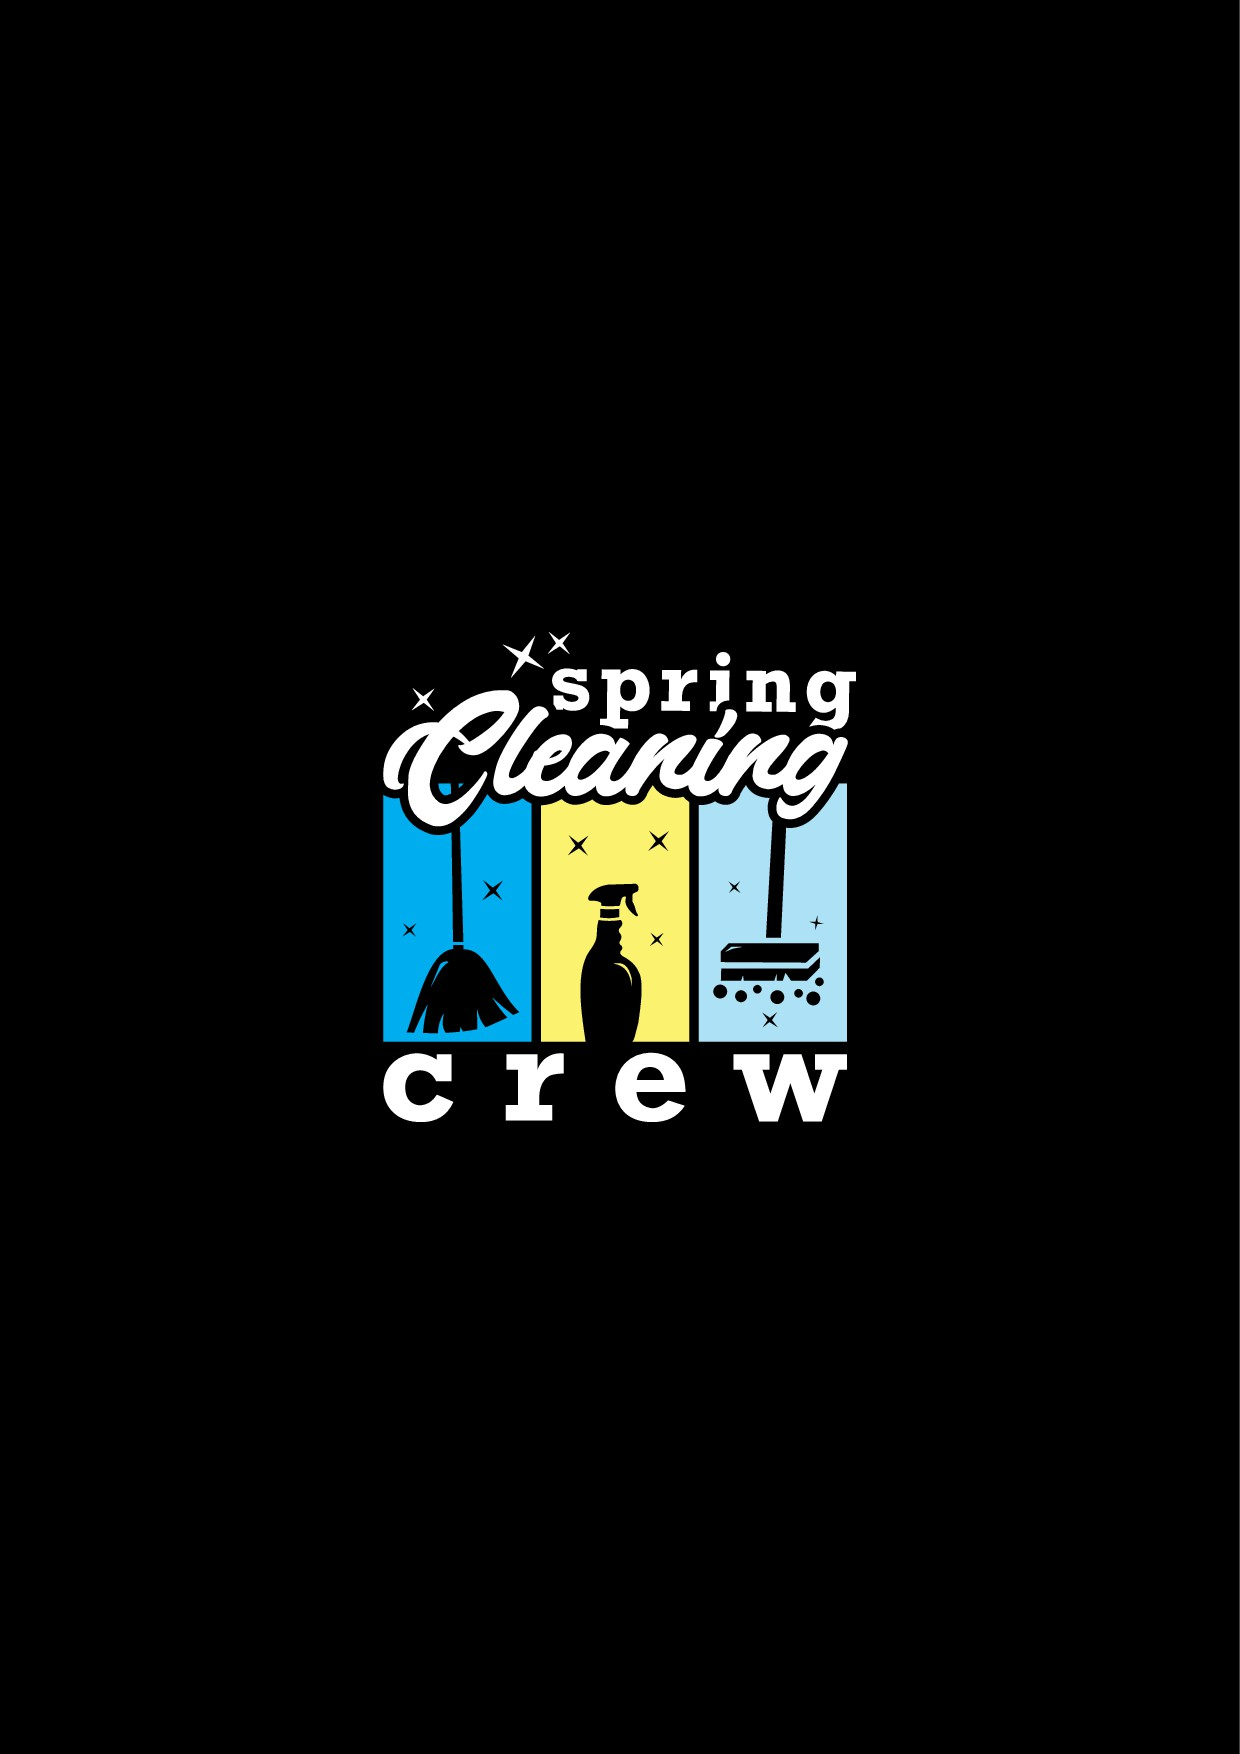 Spring Cleaning Crew T-Shirt Design